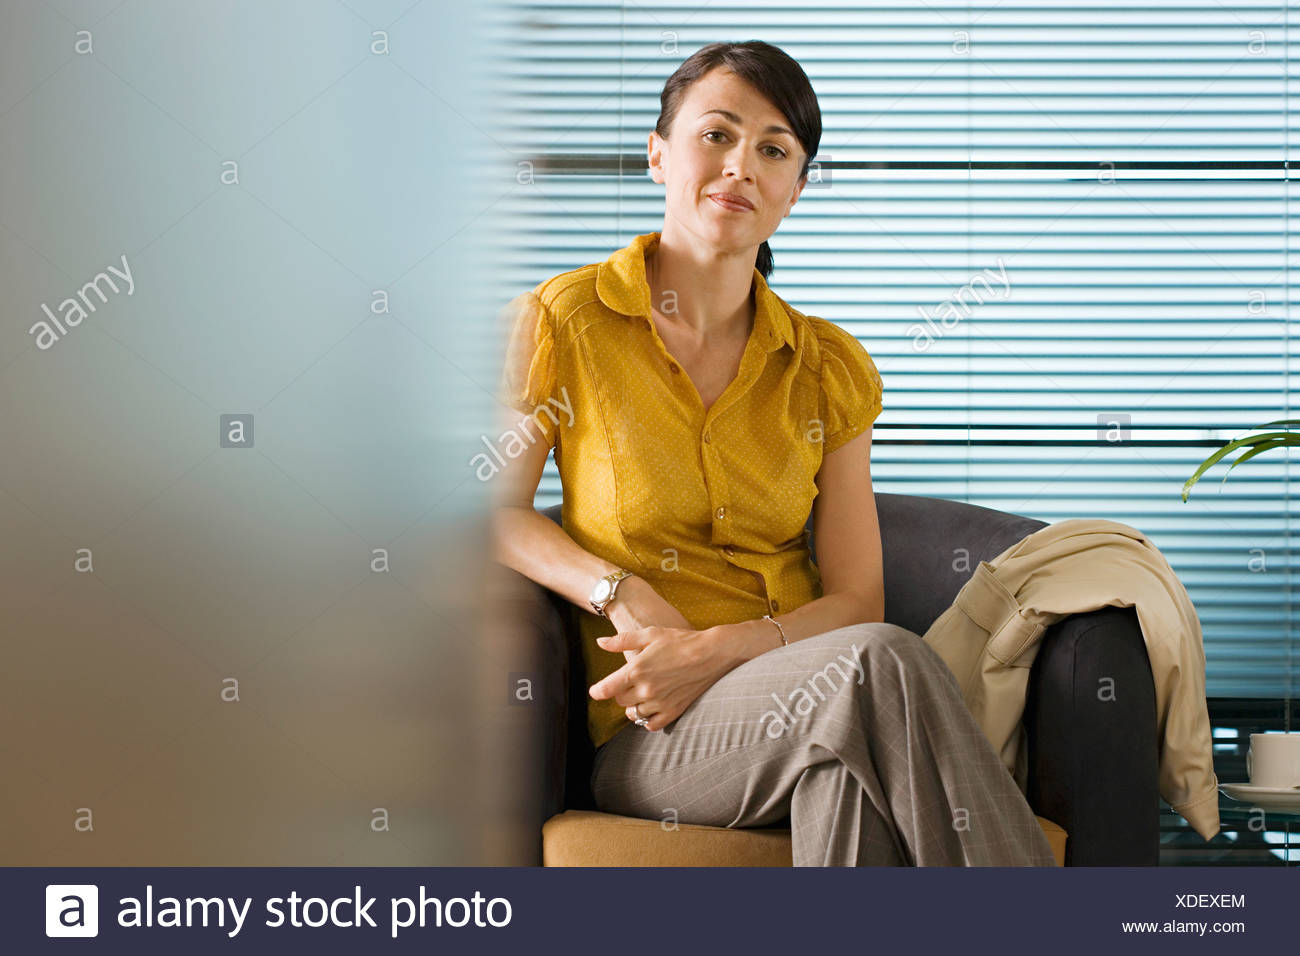 Businesswoman in yellow short sleeved blouse sitting in office chair smiling portrait - Stock Image